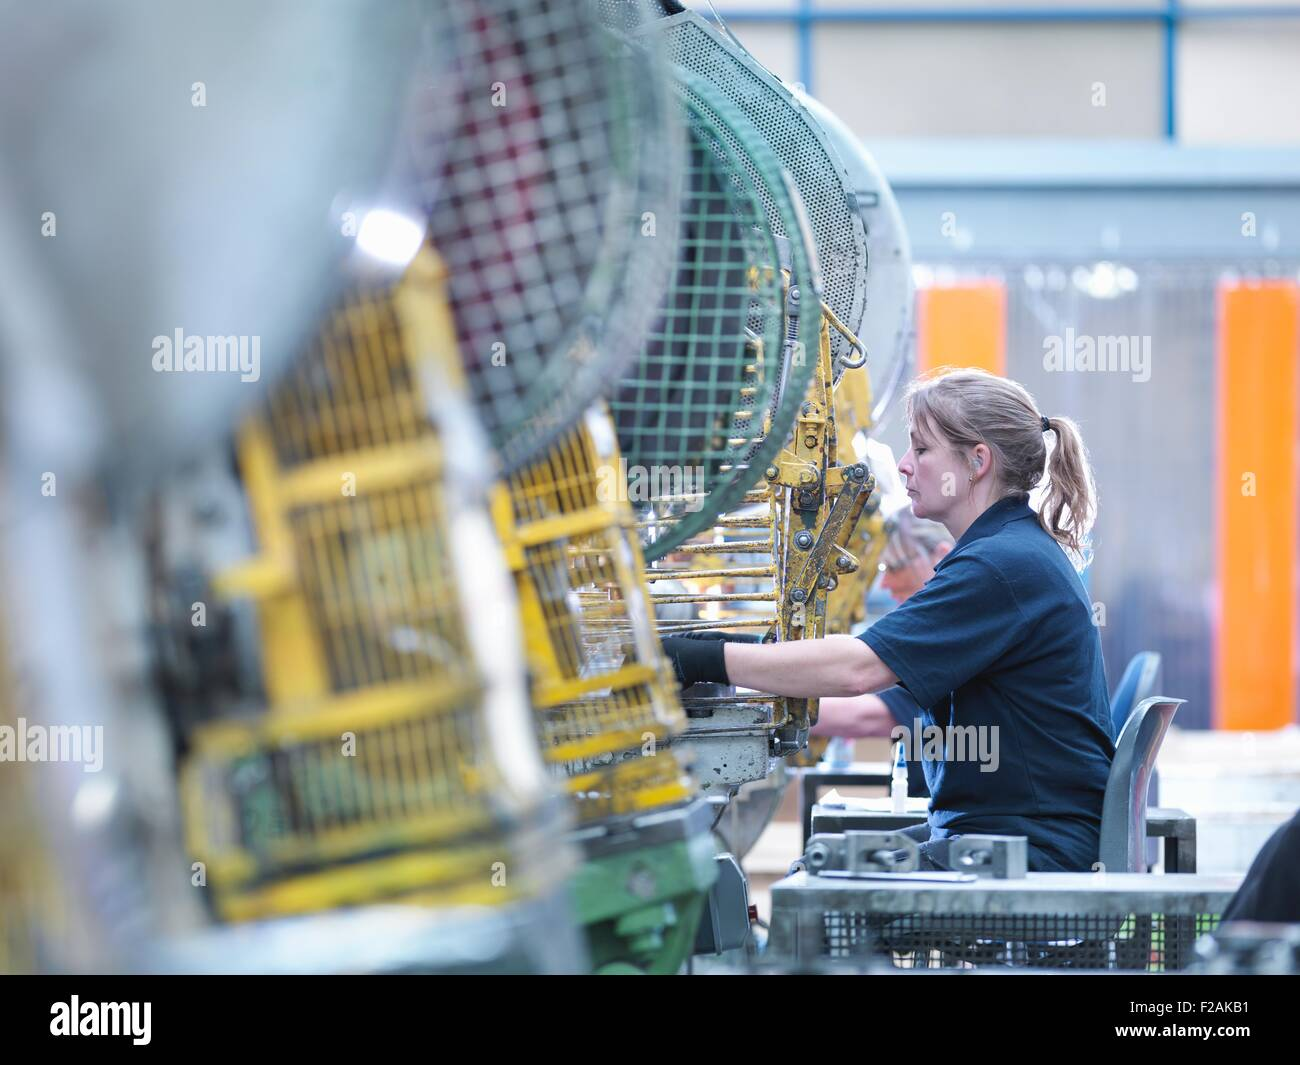 Female worker operating punch machine in engineering factory - Stock Image